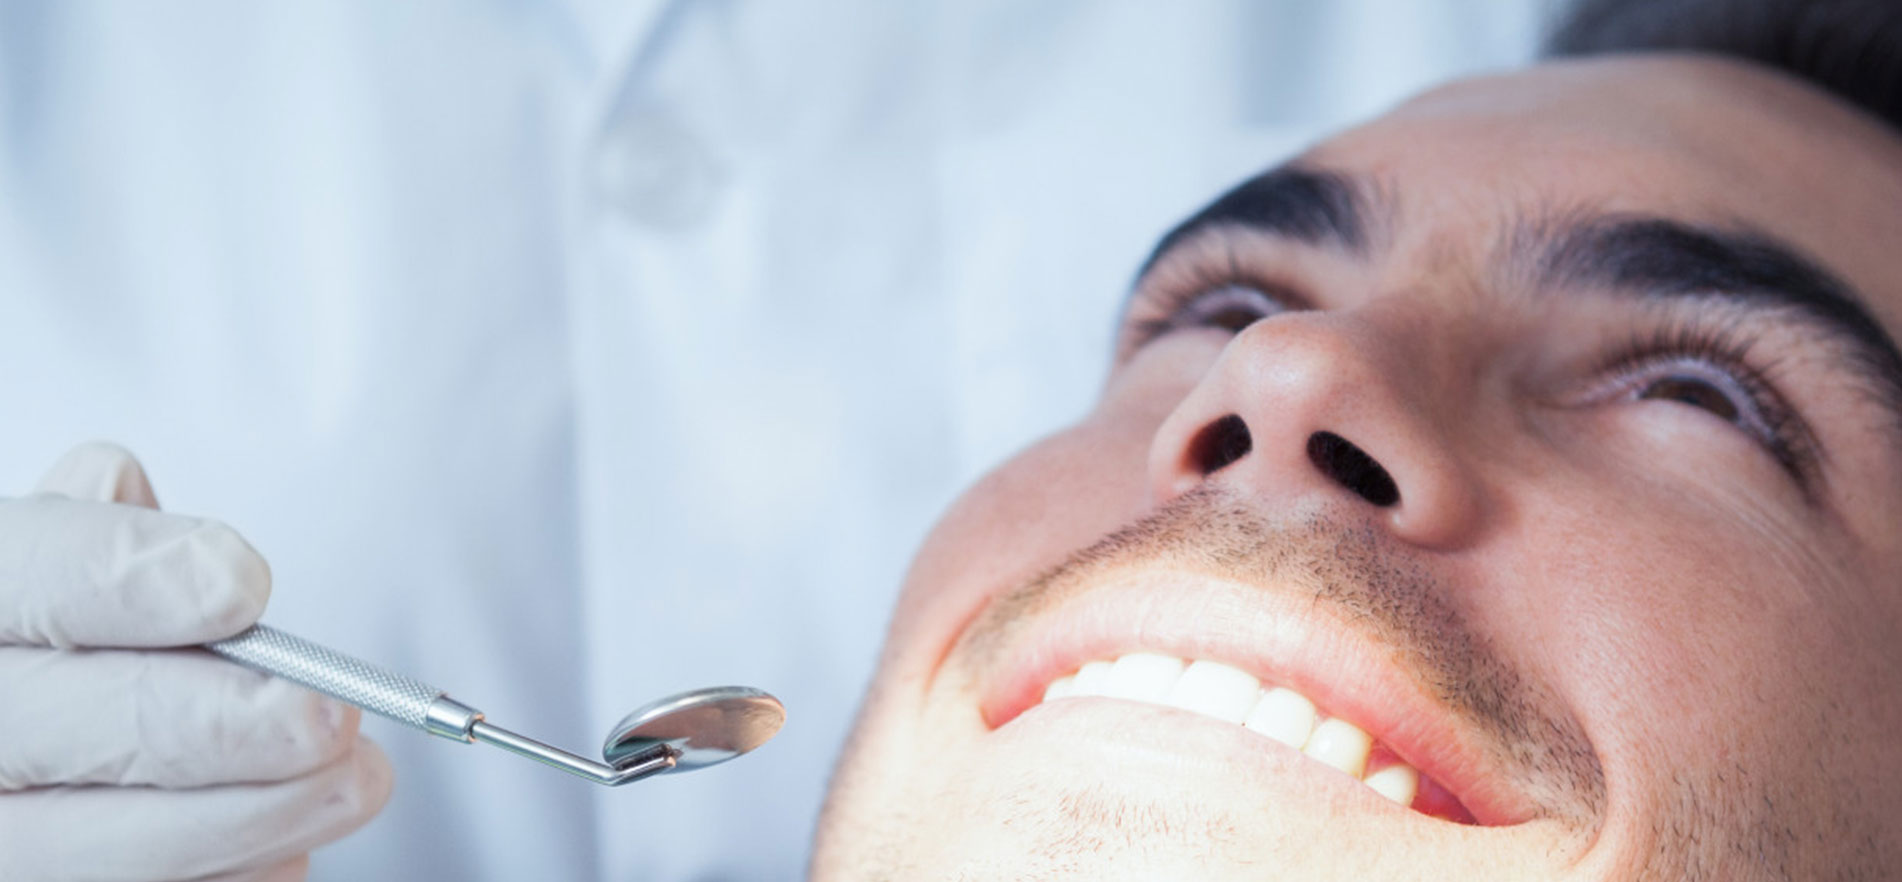 Man smiling at the dental